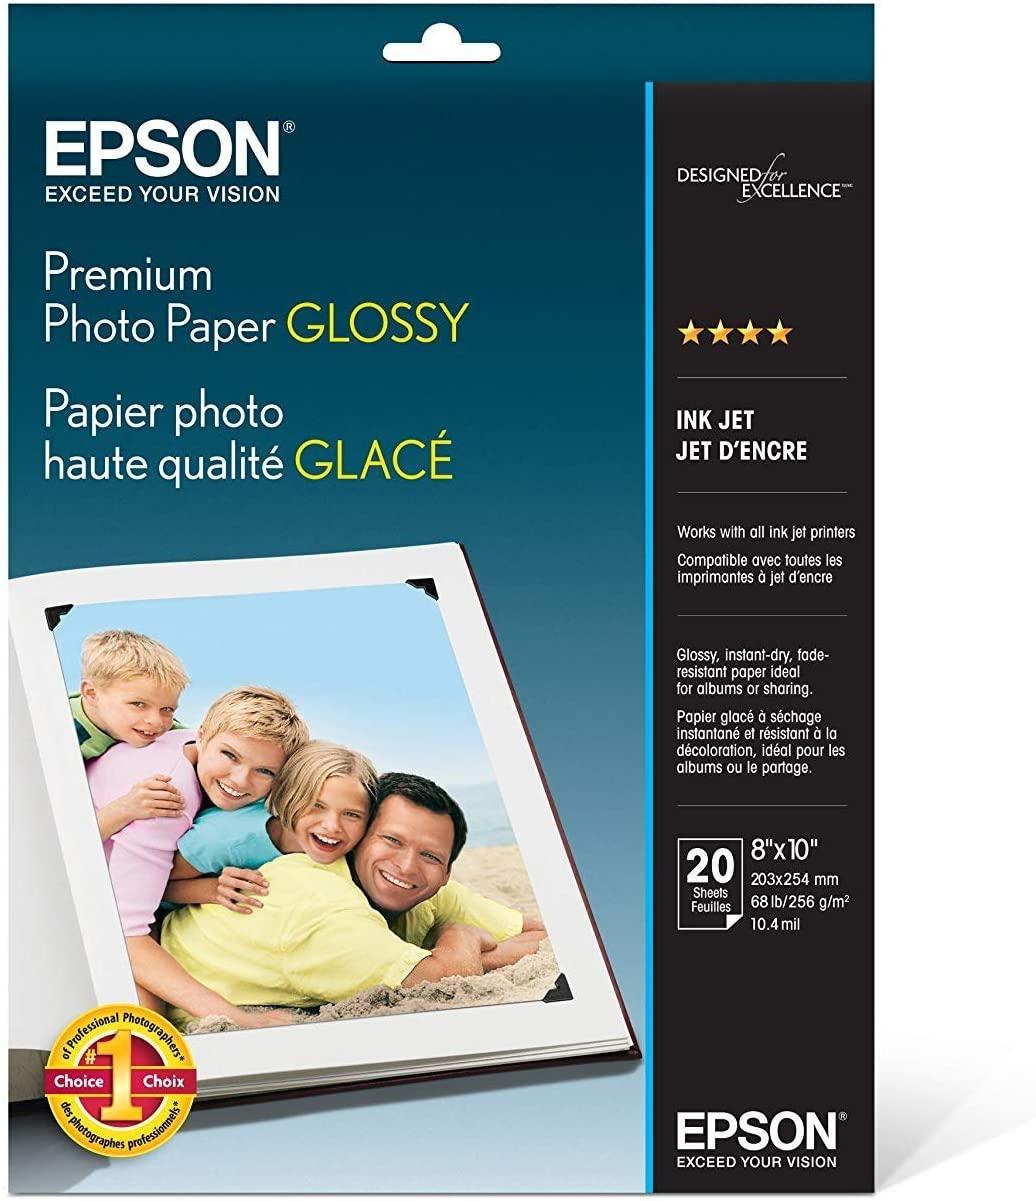 Epson Premium Photo Paper GLOSSY Max 76% OFF Sheets shopping S0414 Inches 20 8x10